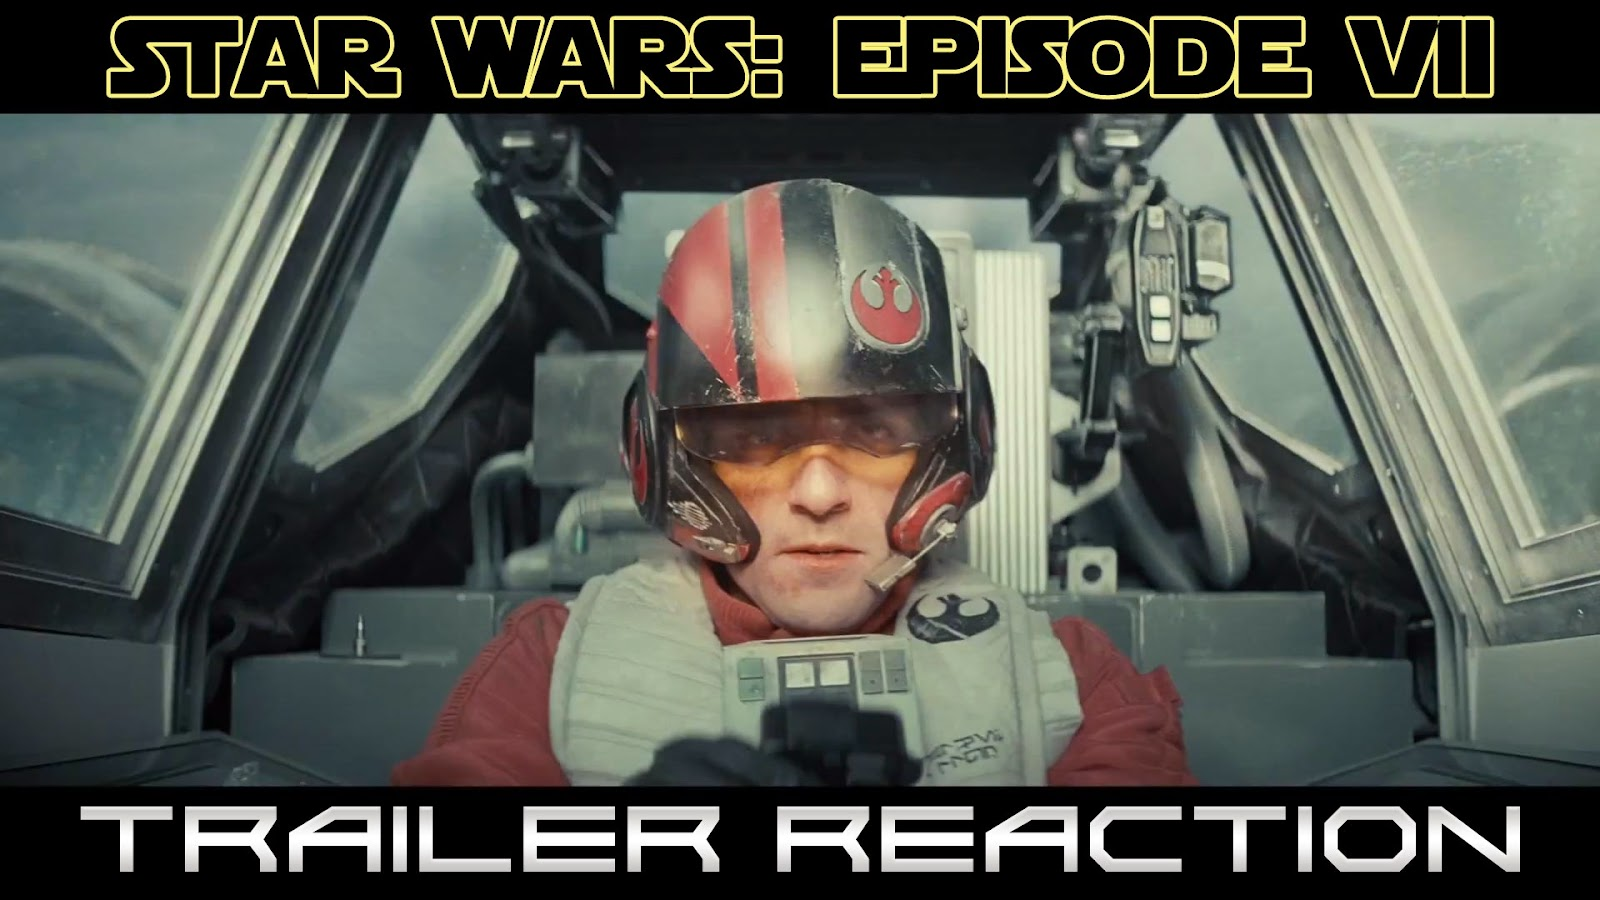 reaction to trailer for The Force Awakens Episode 7 Star Wars teaser #1